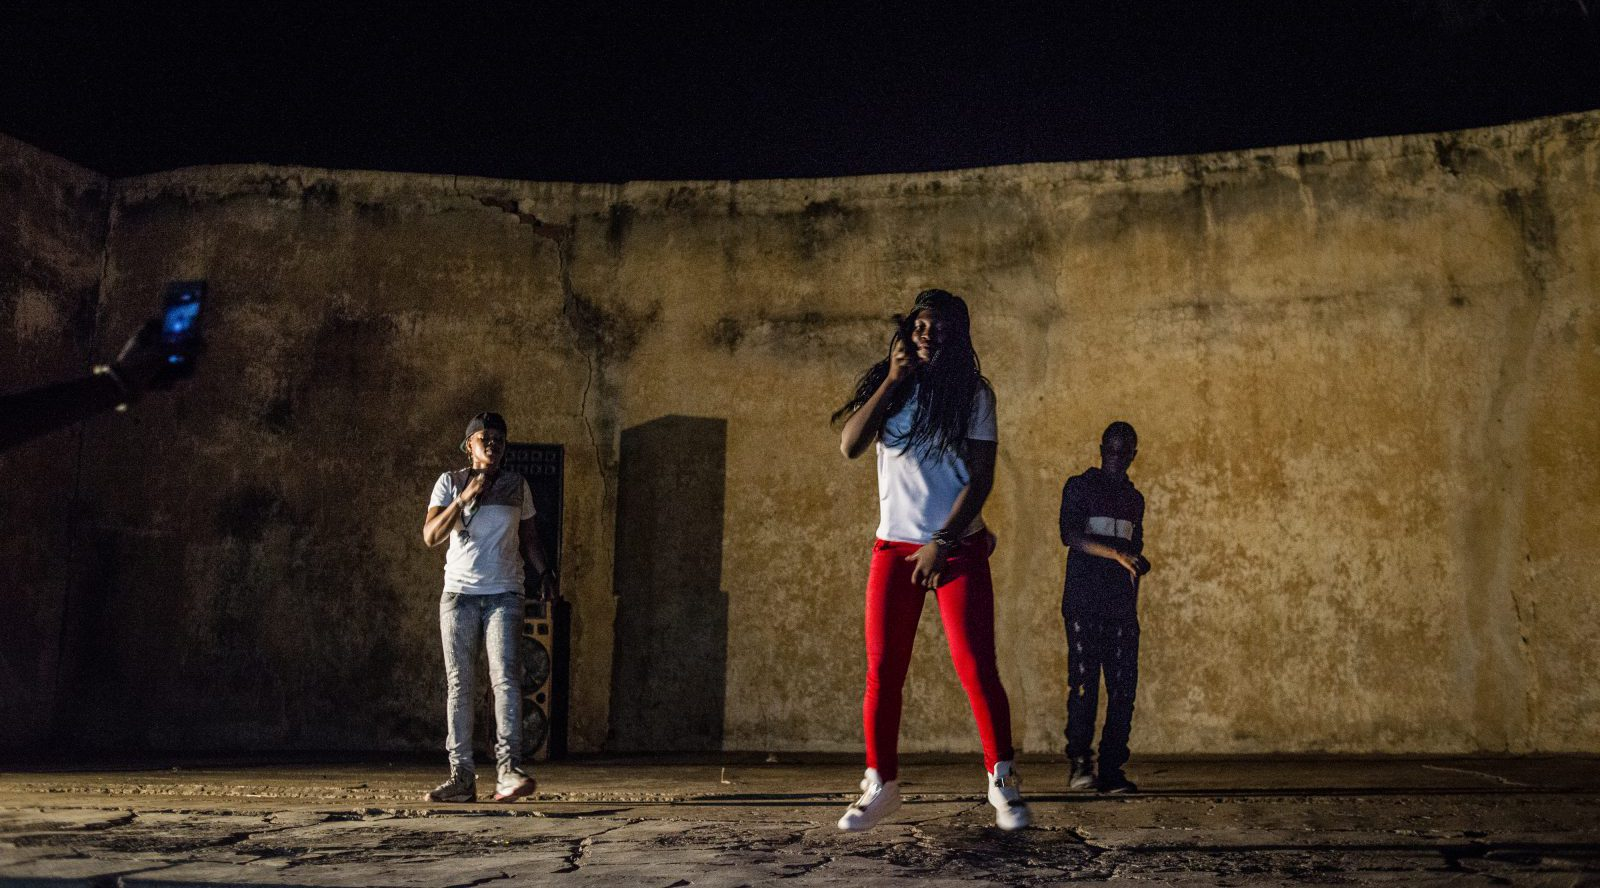 Little Ami (center) takes the stage with Ami (left) during one of her last songs of the evening on May 20, 2017 in Macina, Mali.